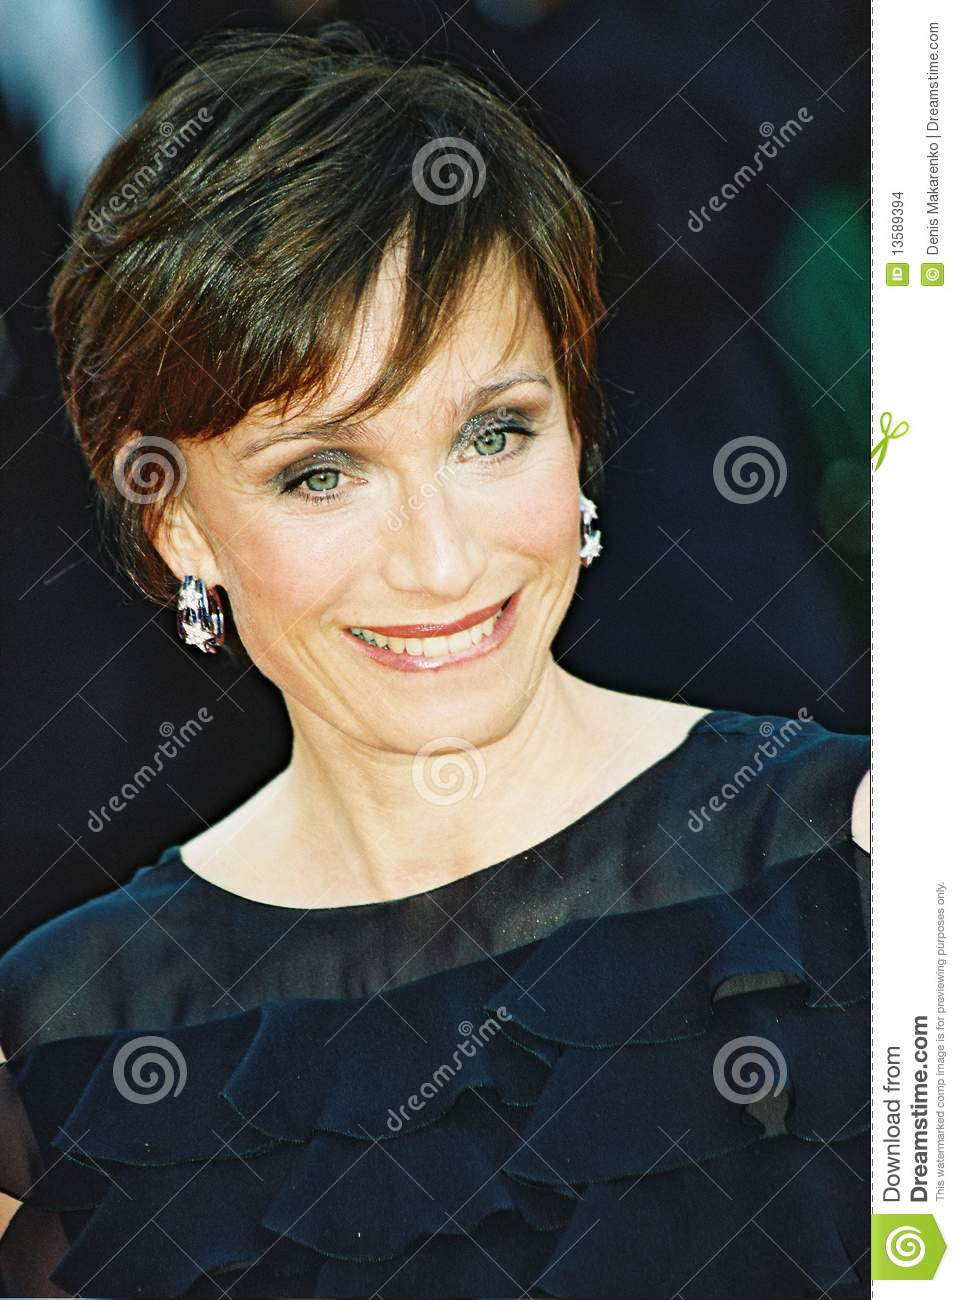 Kristin <b>Scott Thomas</b> Redaktionelles Stockbild - kristin-scott-thomas-13589394